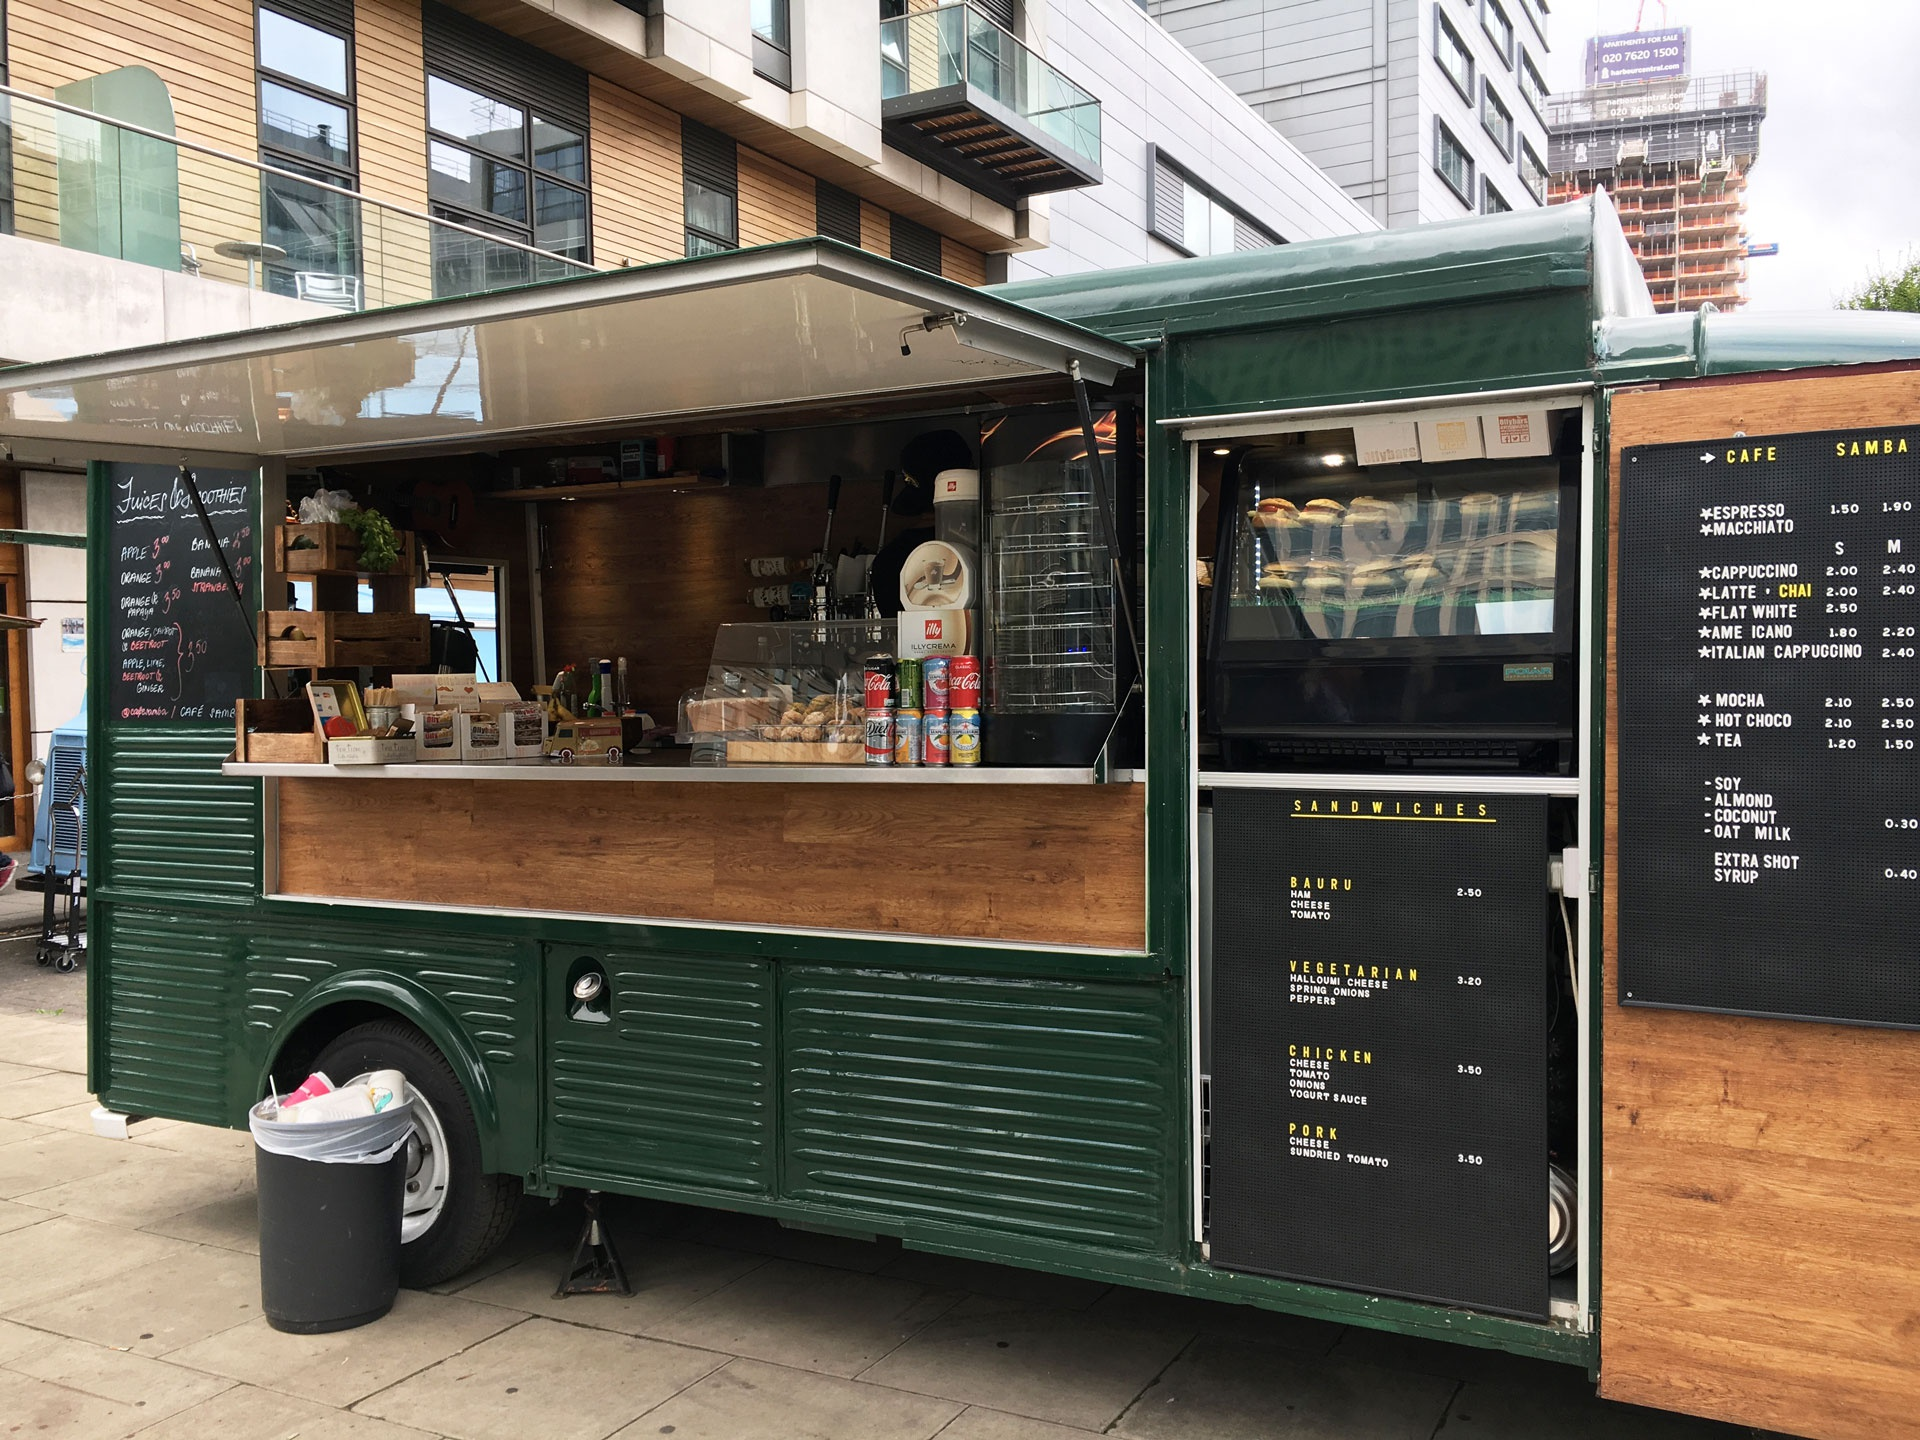 Forest Green coffee van called 'Cafe Samba'